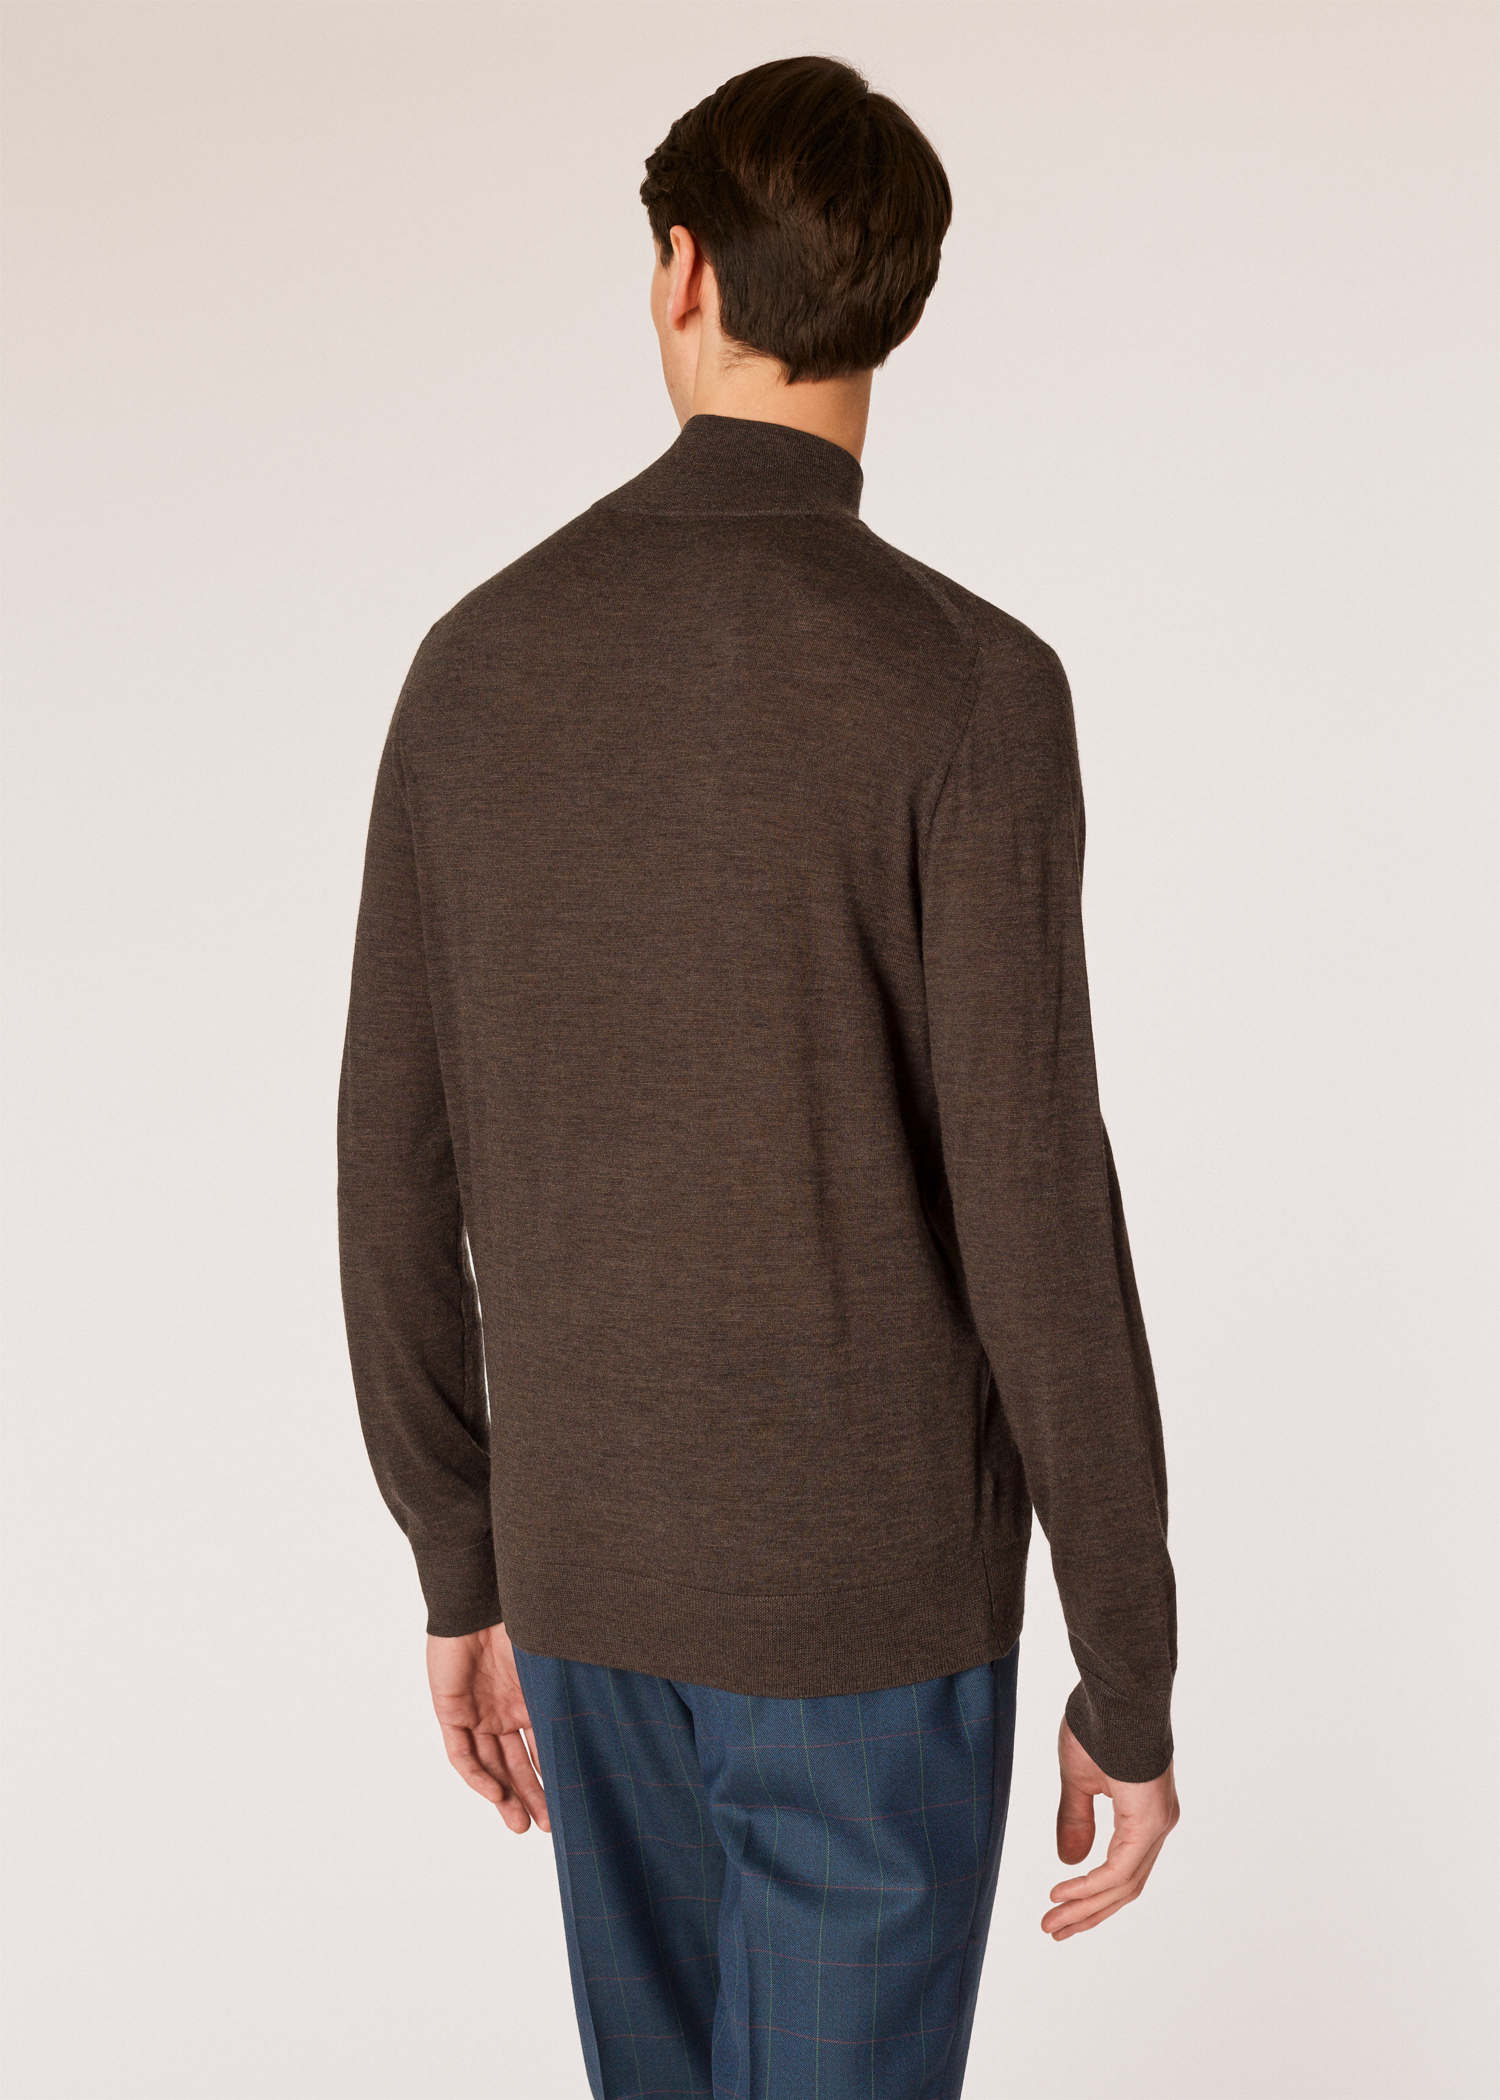 37508fd9d59 Men's Hazelnut Funnel Neck Merino Wool Half-Zip Sweater